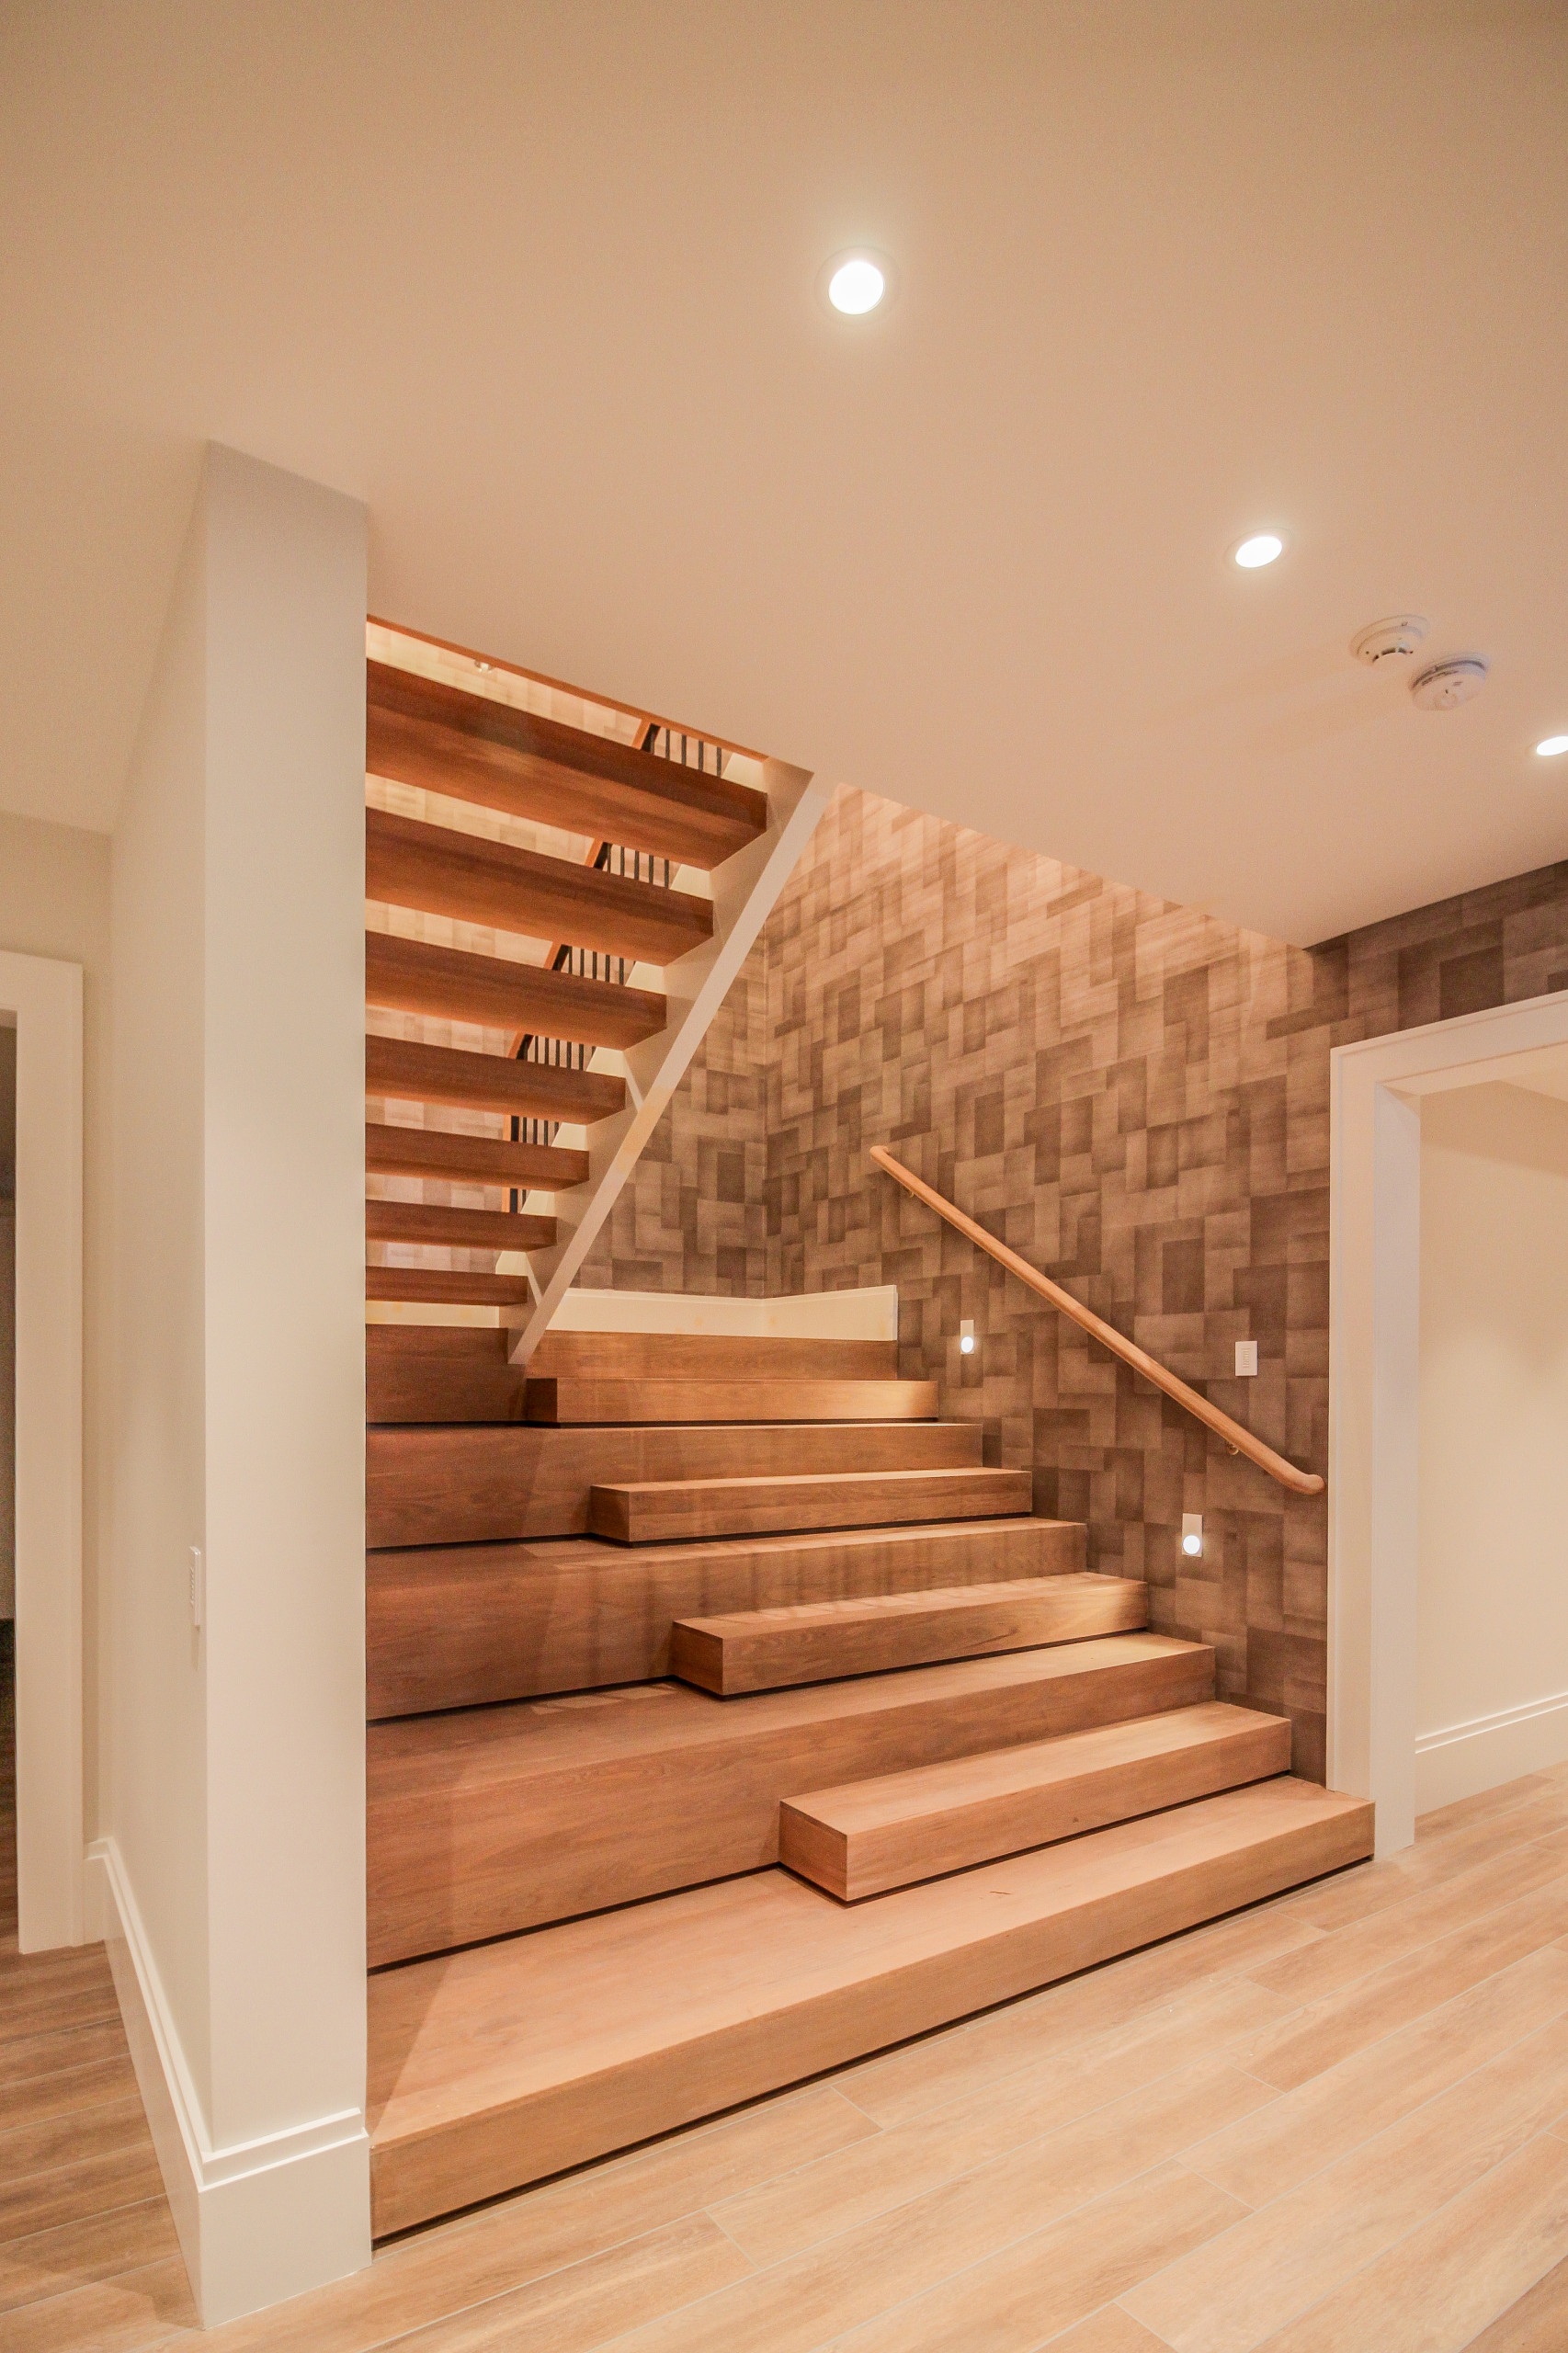 81_Modern Oak Steps with Raised Area for Seating, Great Falls VA 22066